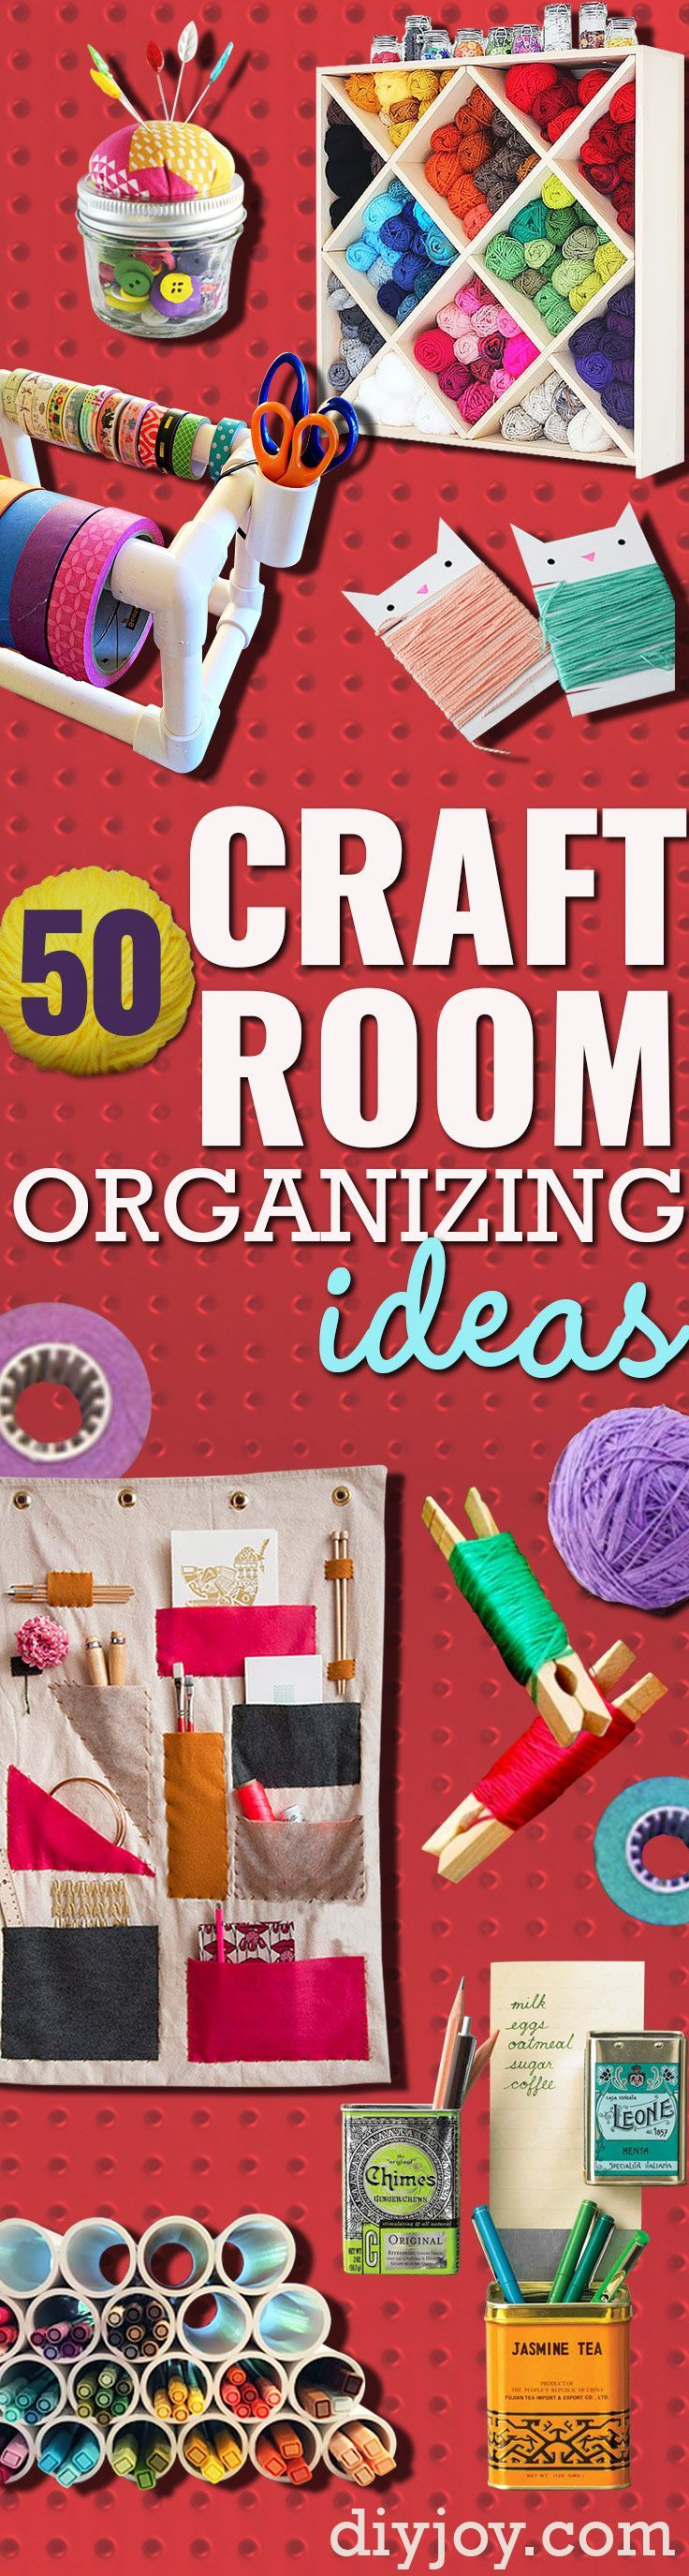 august craft ideas 1072 best images about creative craft room organizing 1072